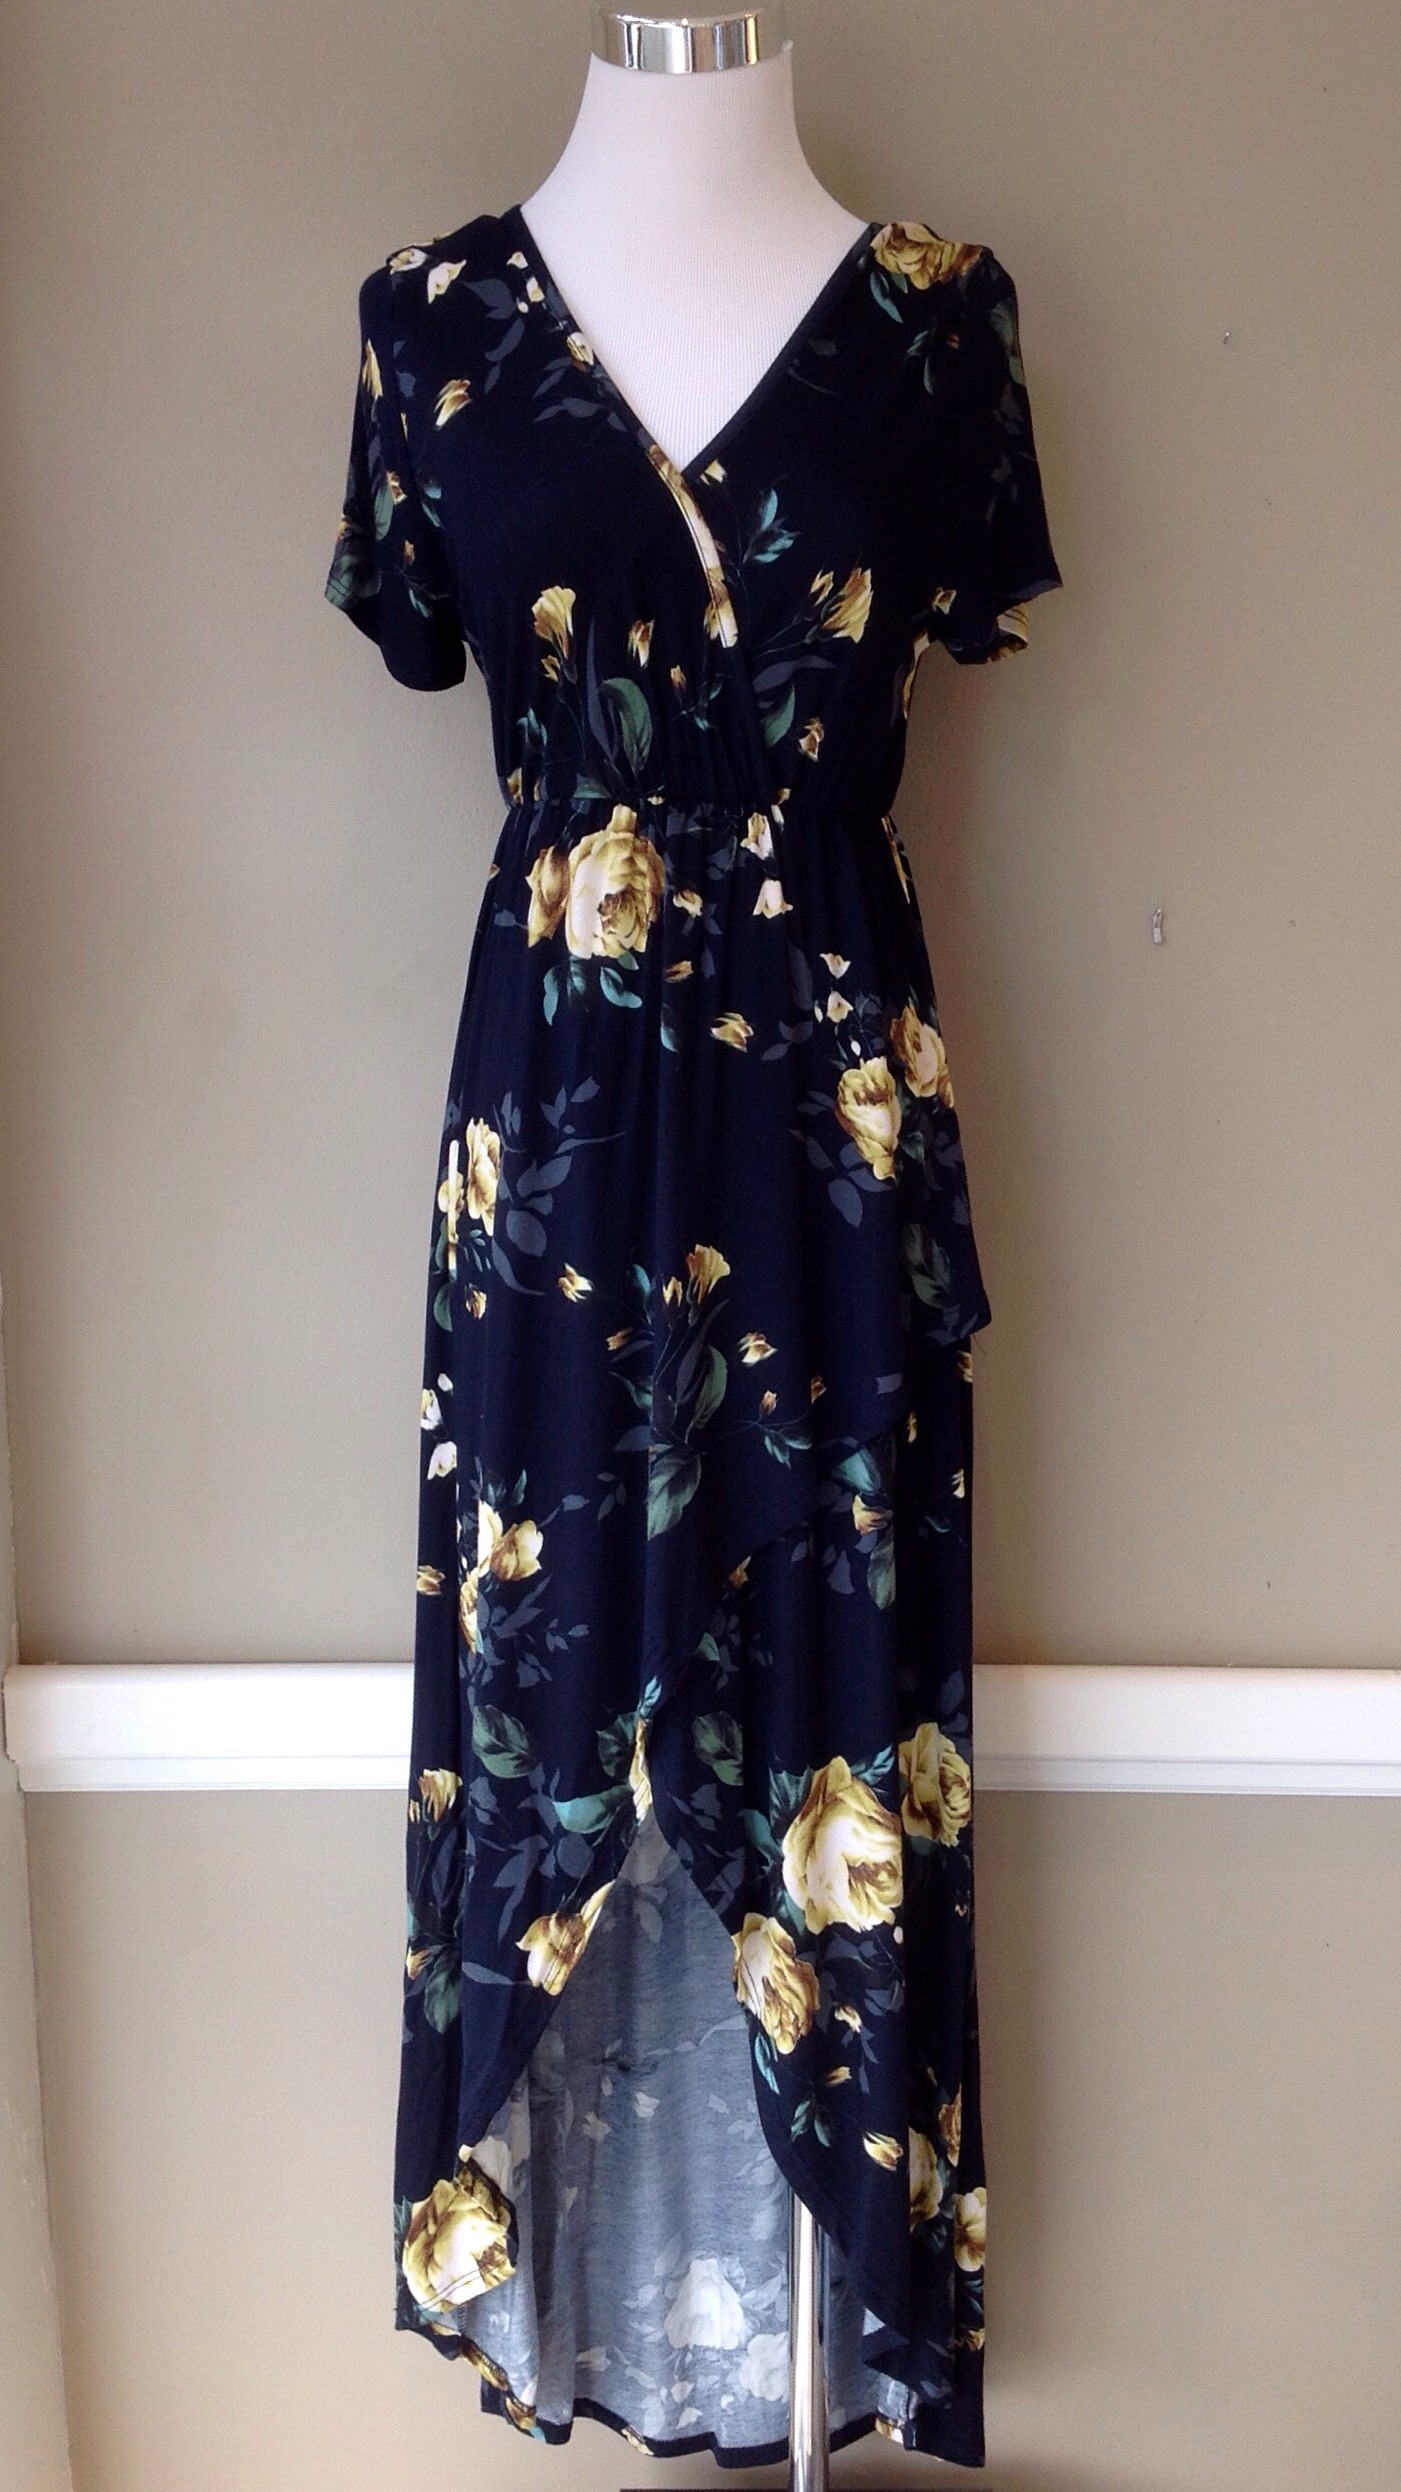 Navy floral print maxi with high-low hem, $45